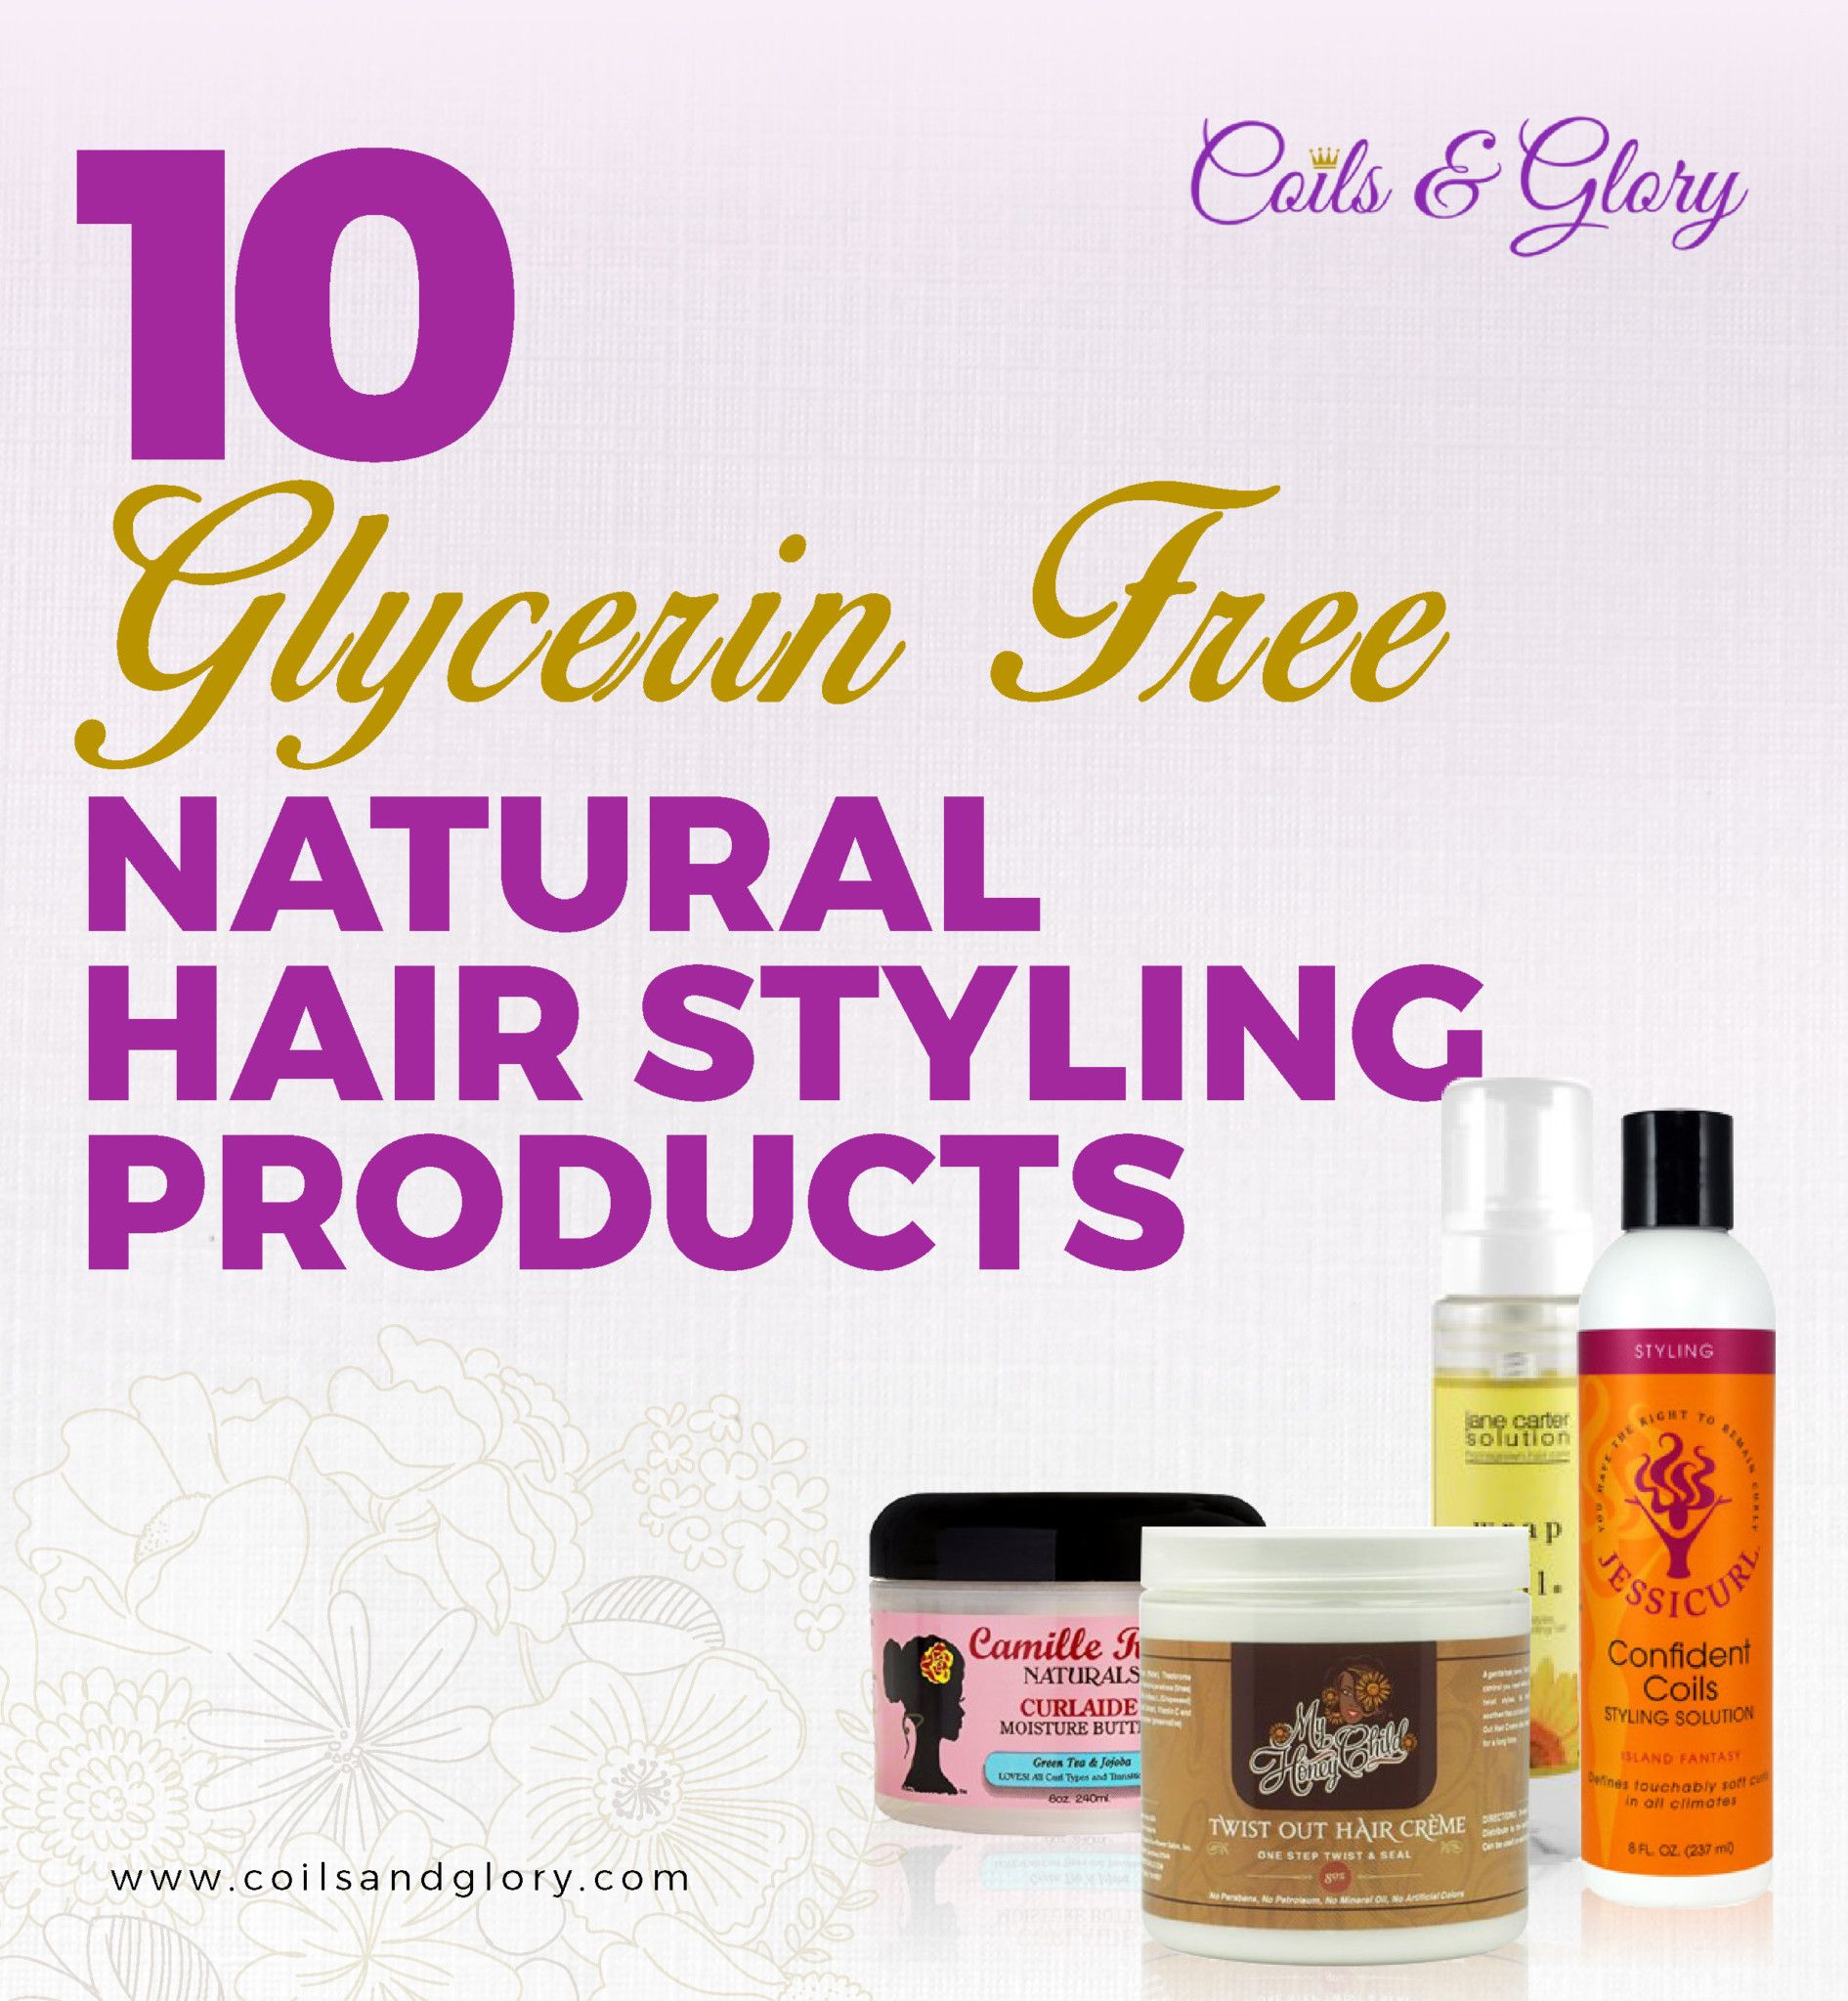 glycerin free natural hair styling products humectant natural